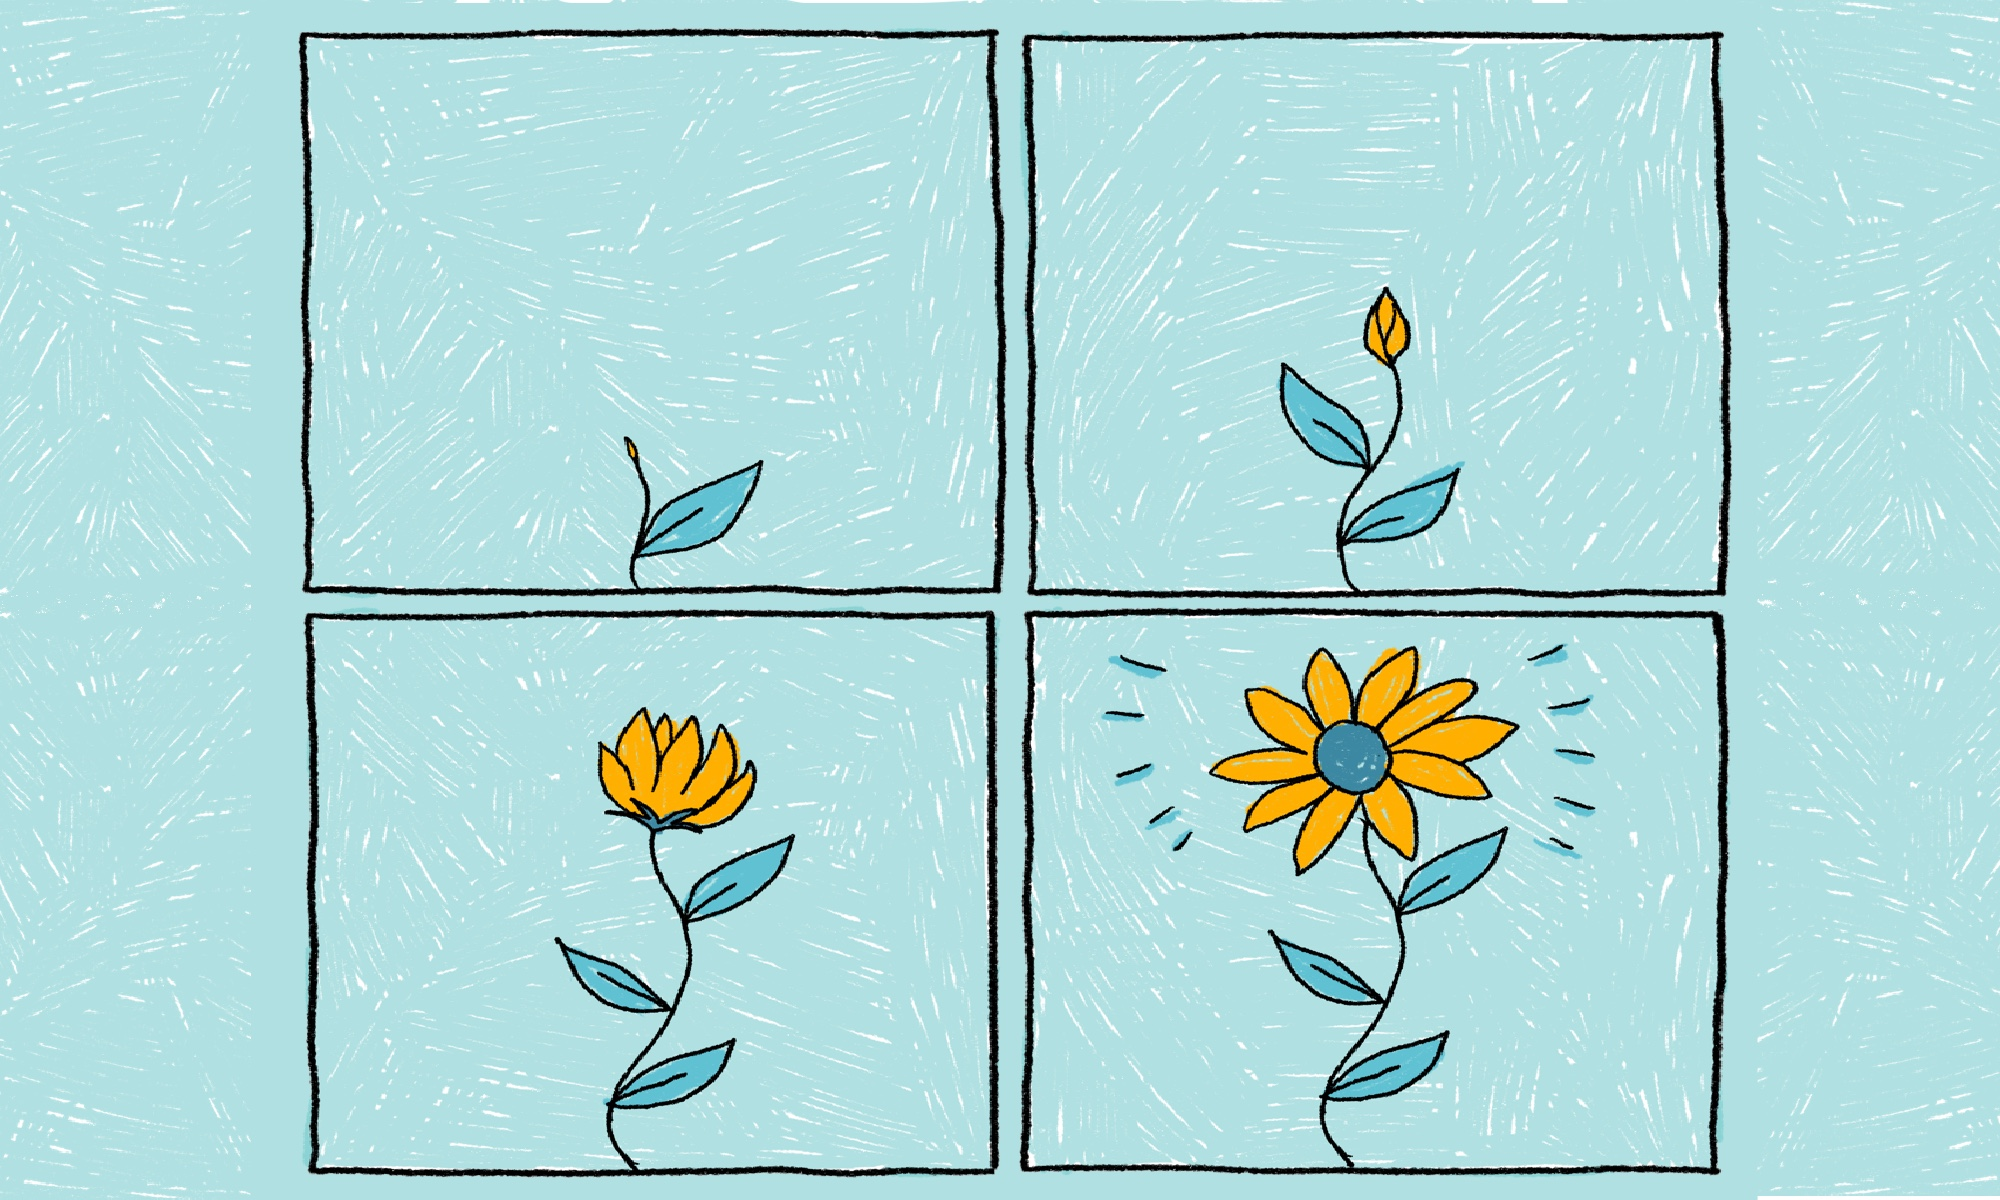 This is an illustration of a sunflower that slowly blooms, a metaphor that reflects the after-effects of self-care